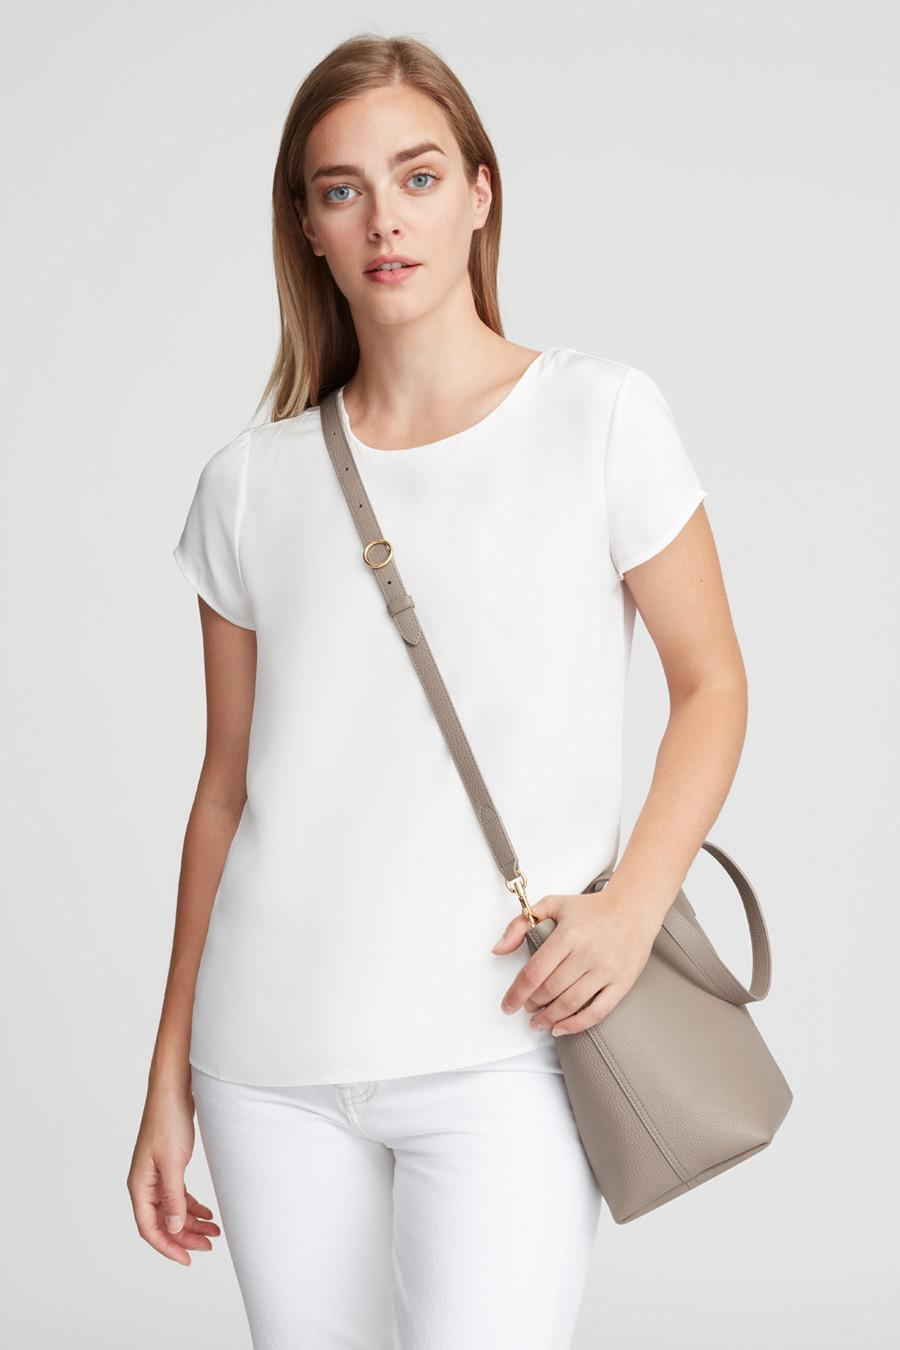 Women's Small Structured Leather Tote Bag in Stone/Blush Pink   Pebbled Leather by Cuyana 5